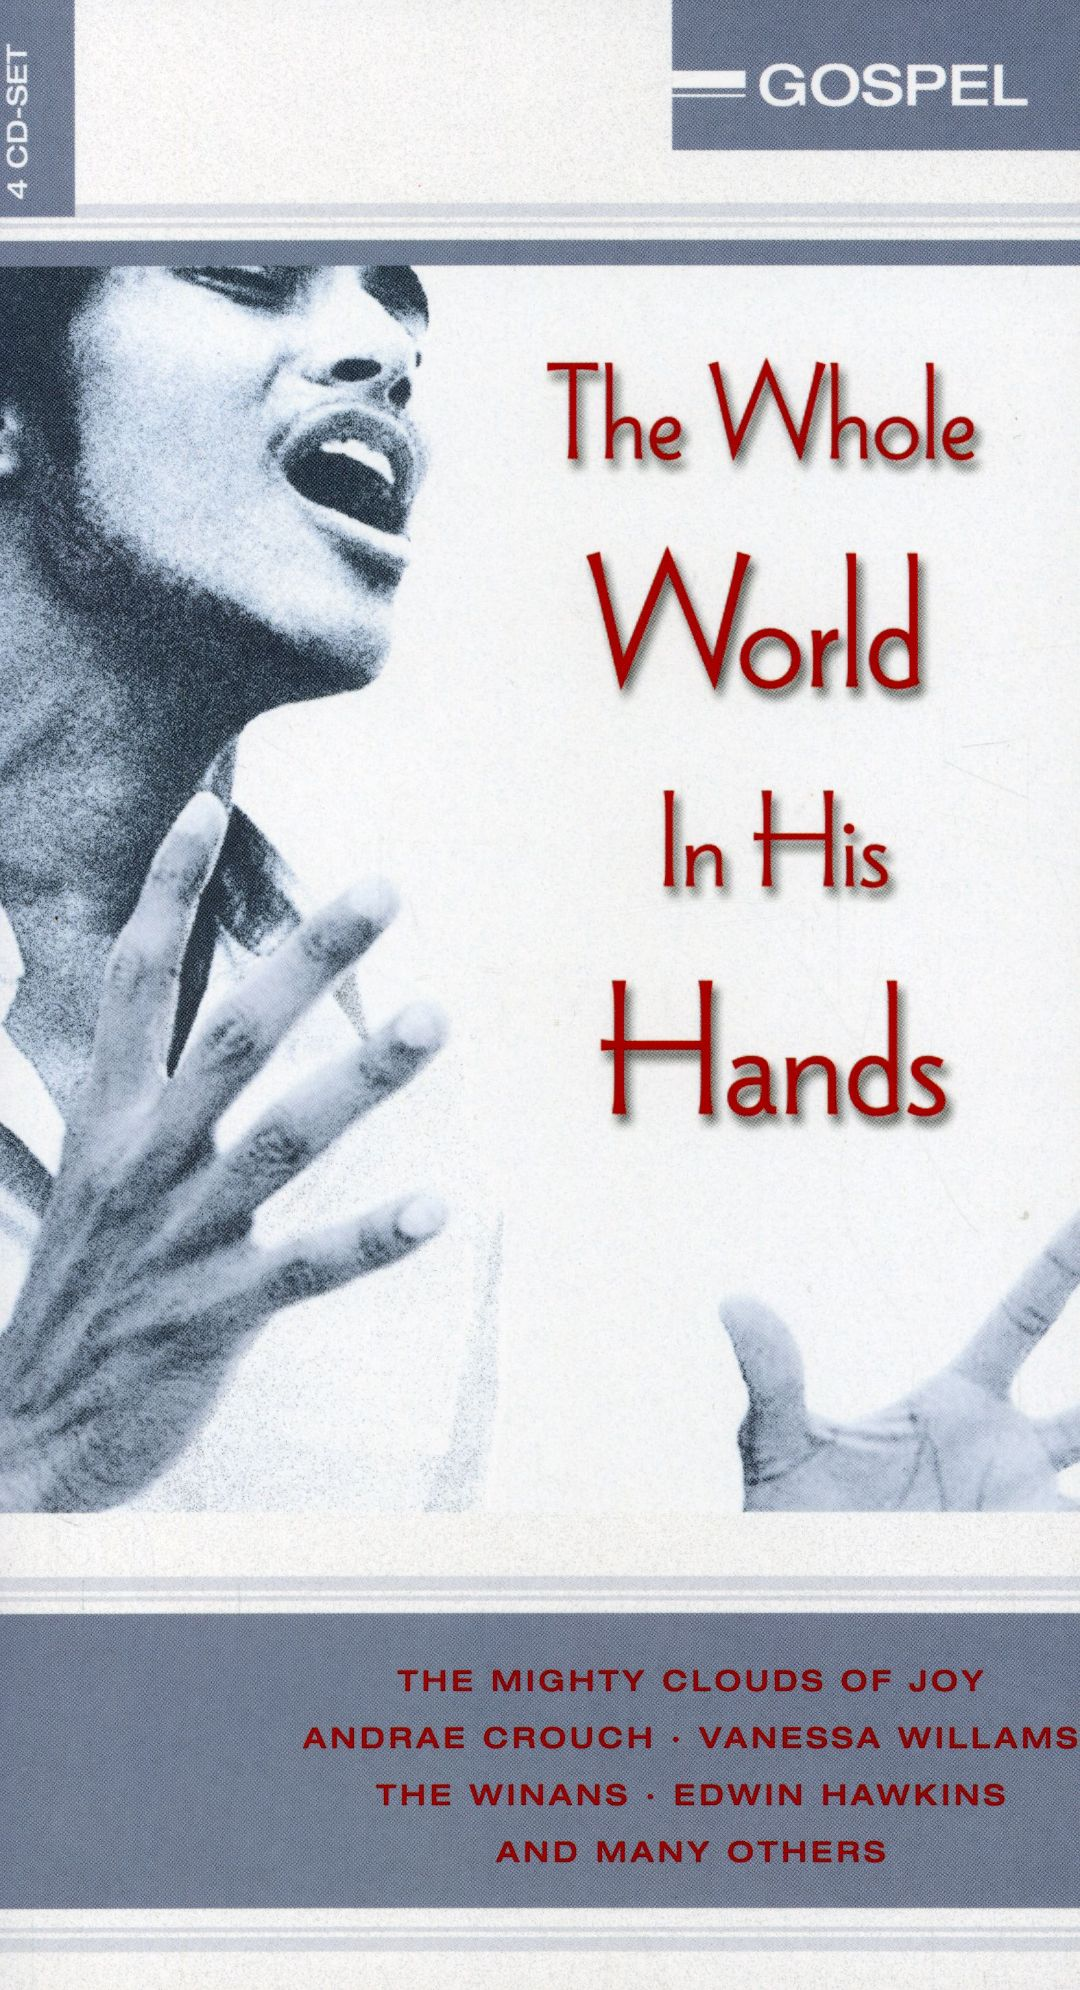 Gospel: The Whole World in His Hand